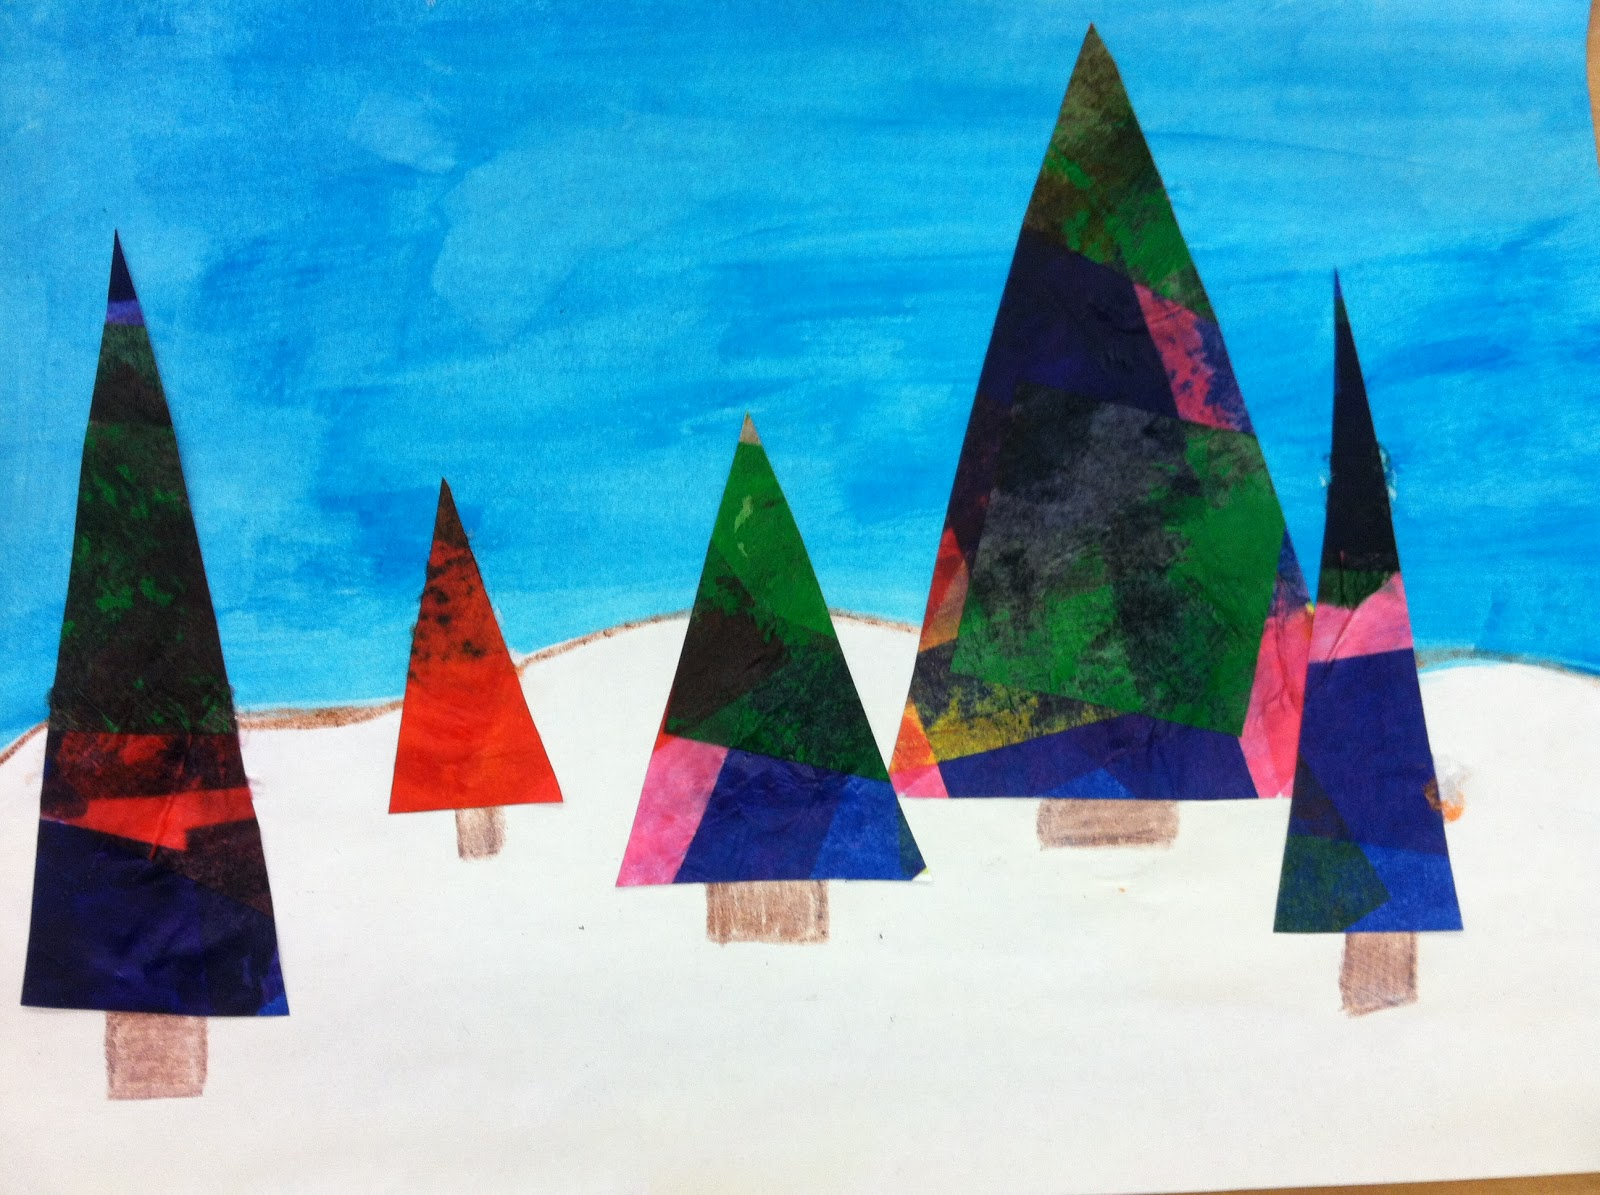 Christmas Tree Forests...and protractors - Teaching in Room 6